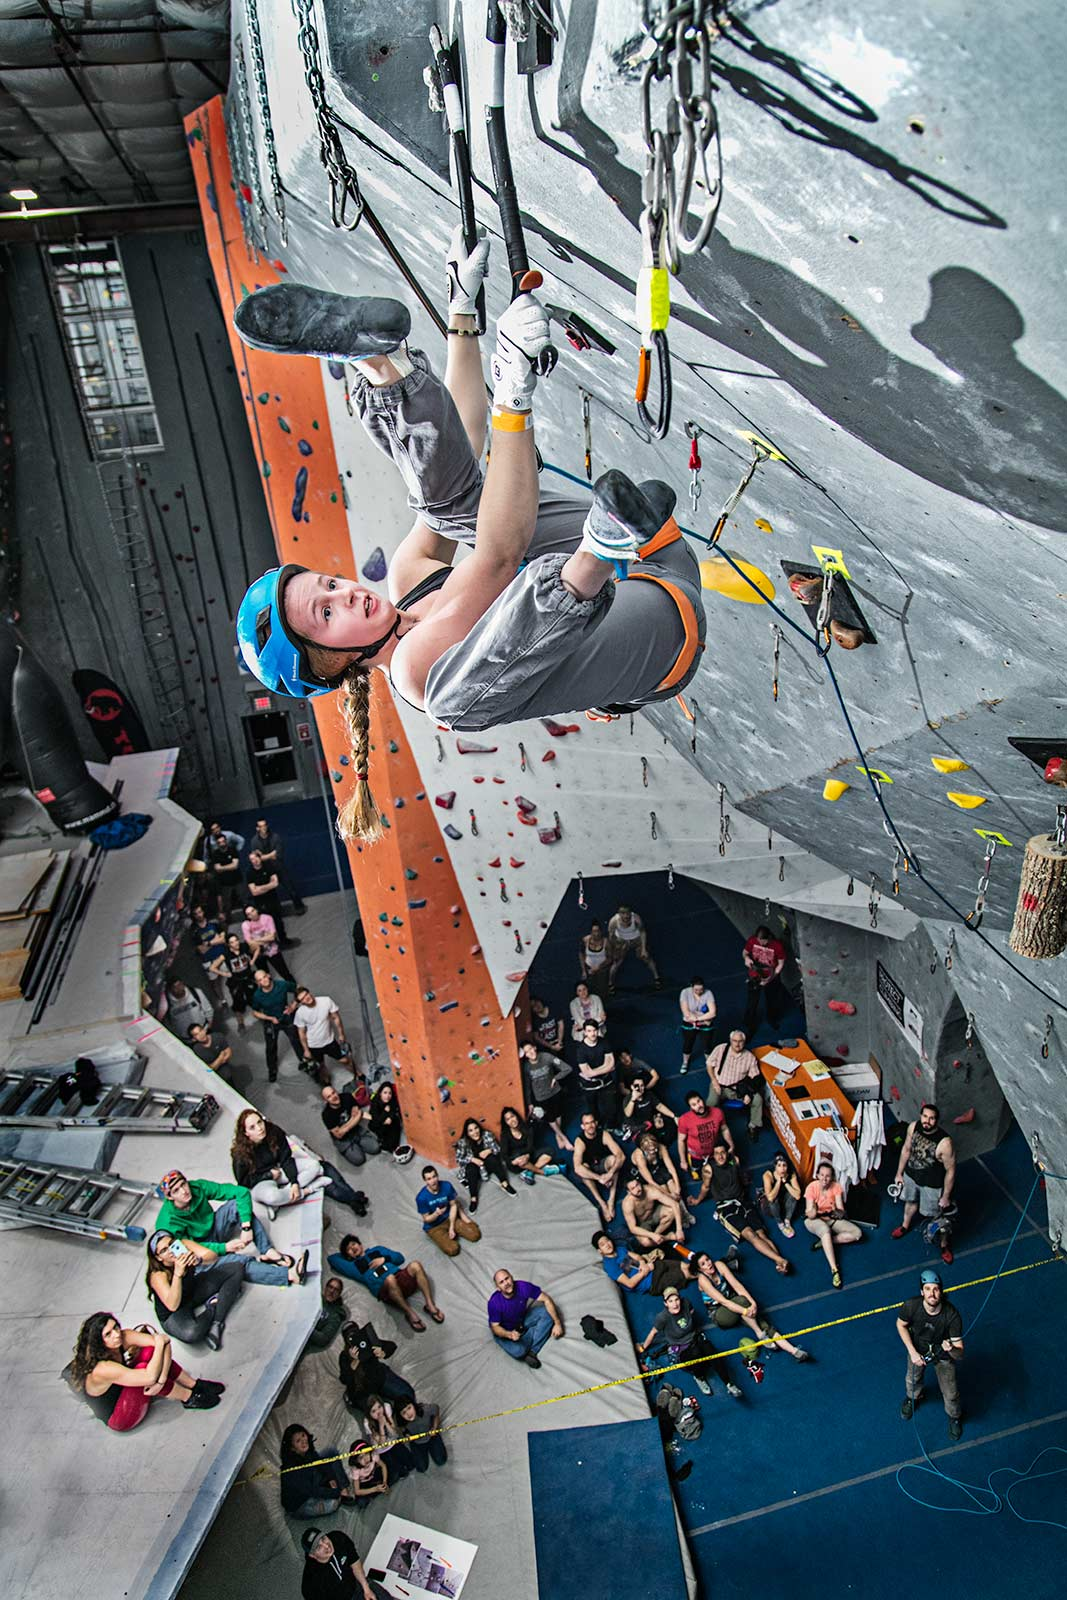 A young professional female ice climber competing in an indoor ice climbing contest